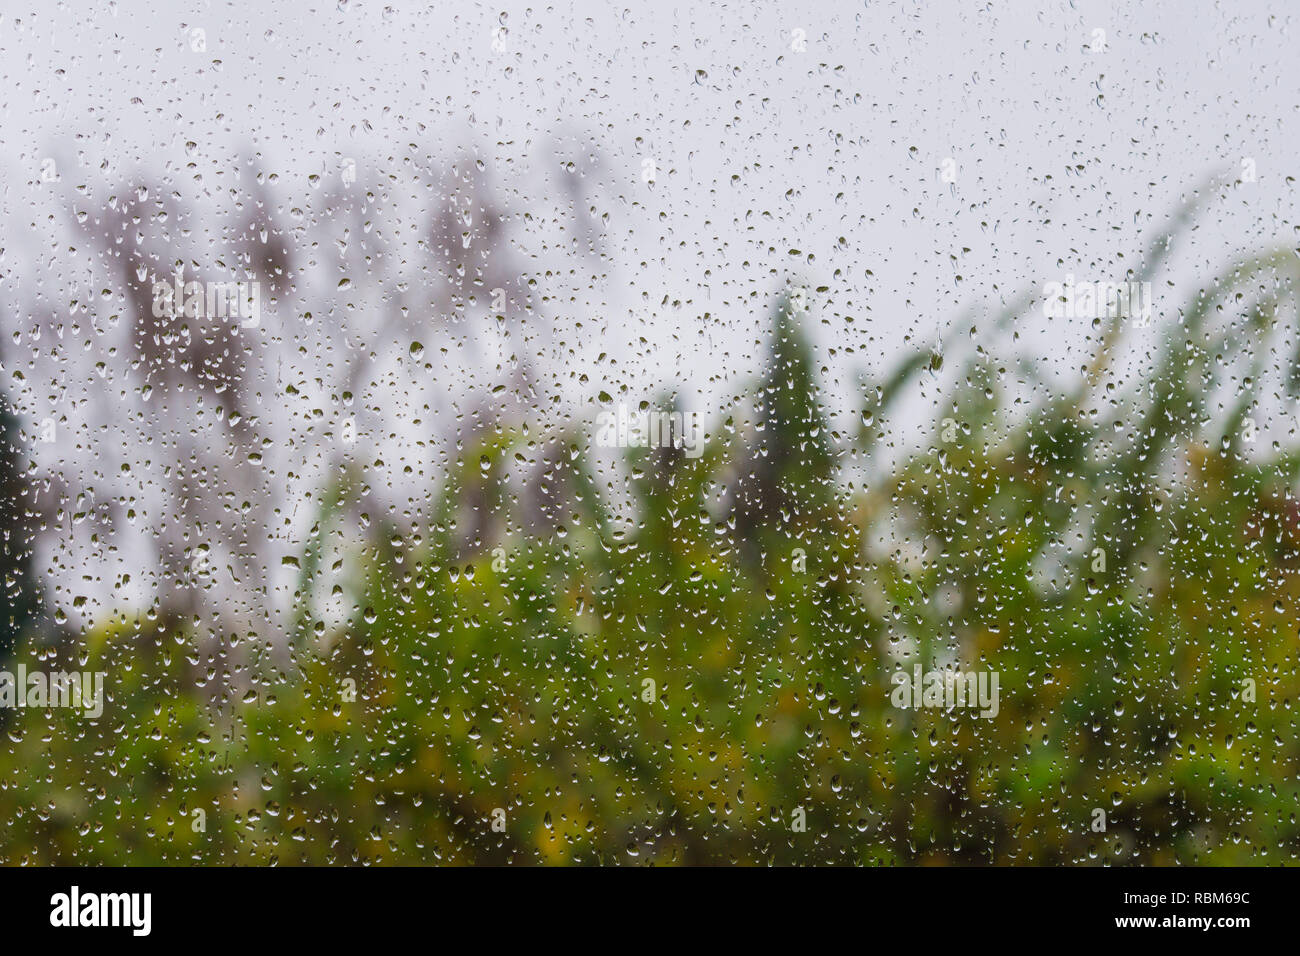 Drops of rain on the window, blurred trees on the background - Stock Image